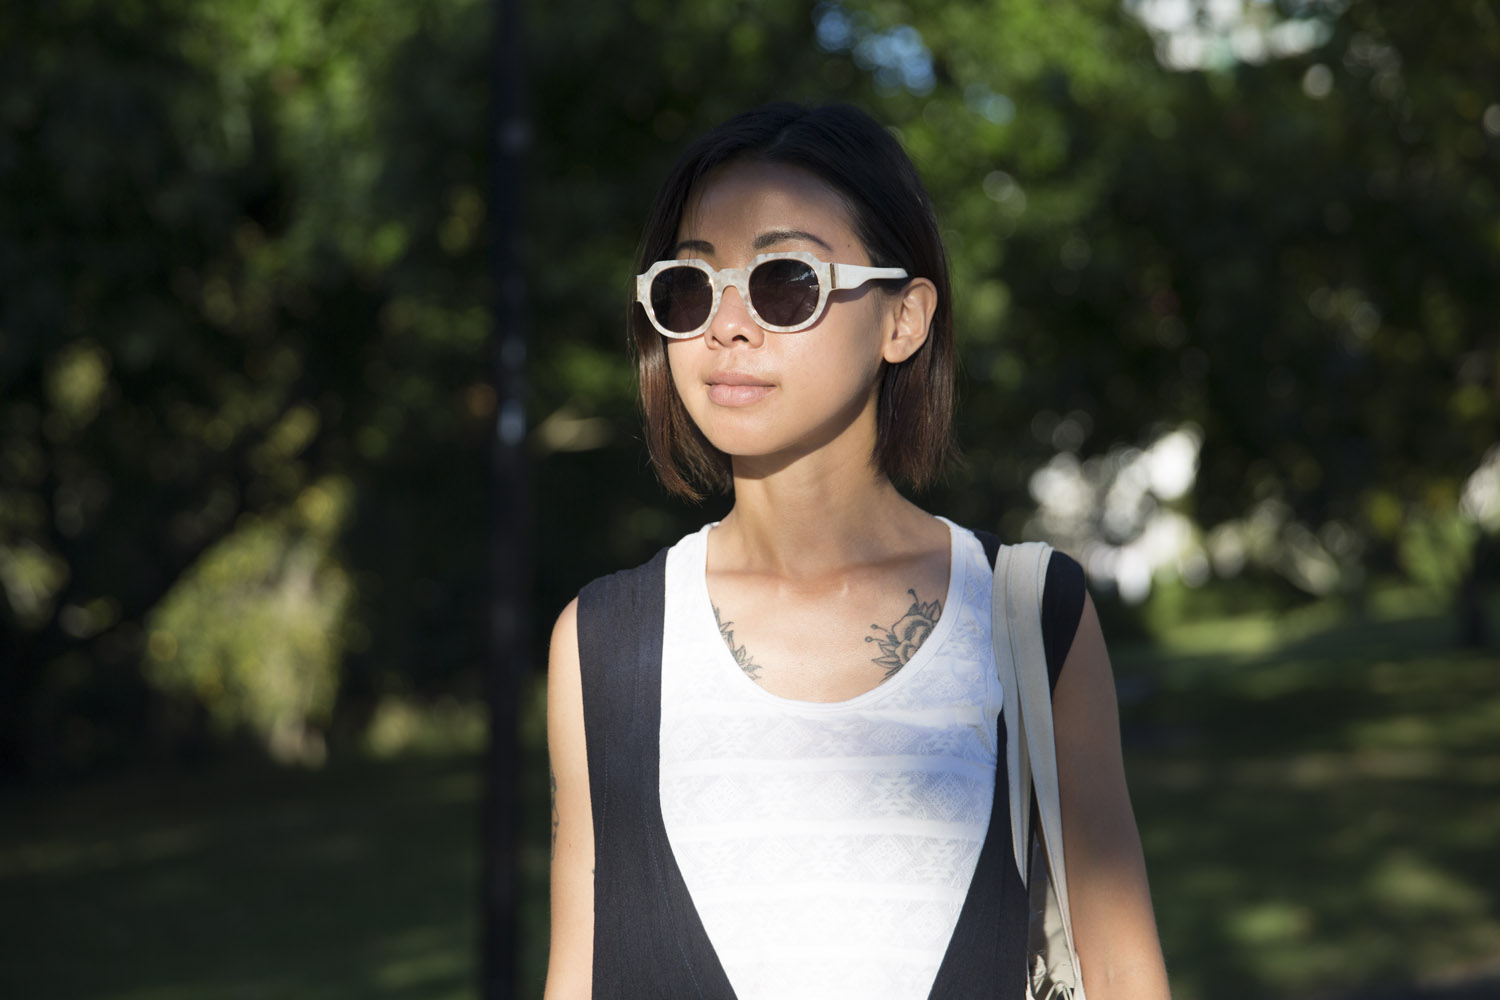 Maggie wears Colab sunglasses.